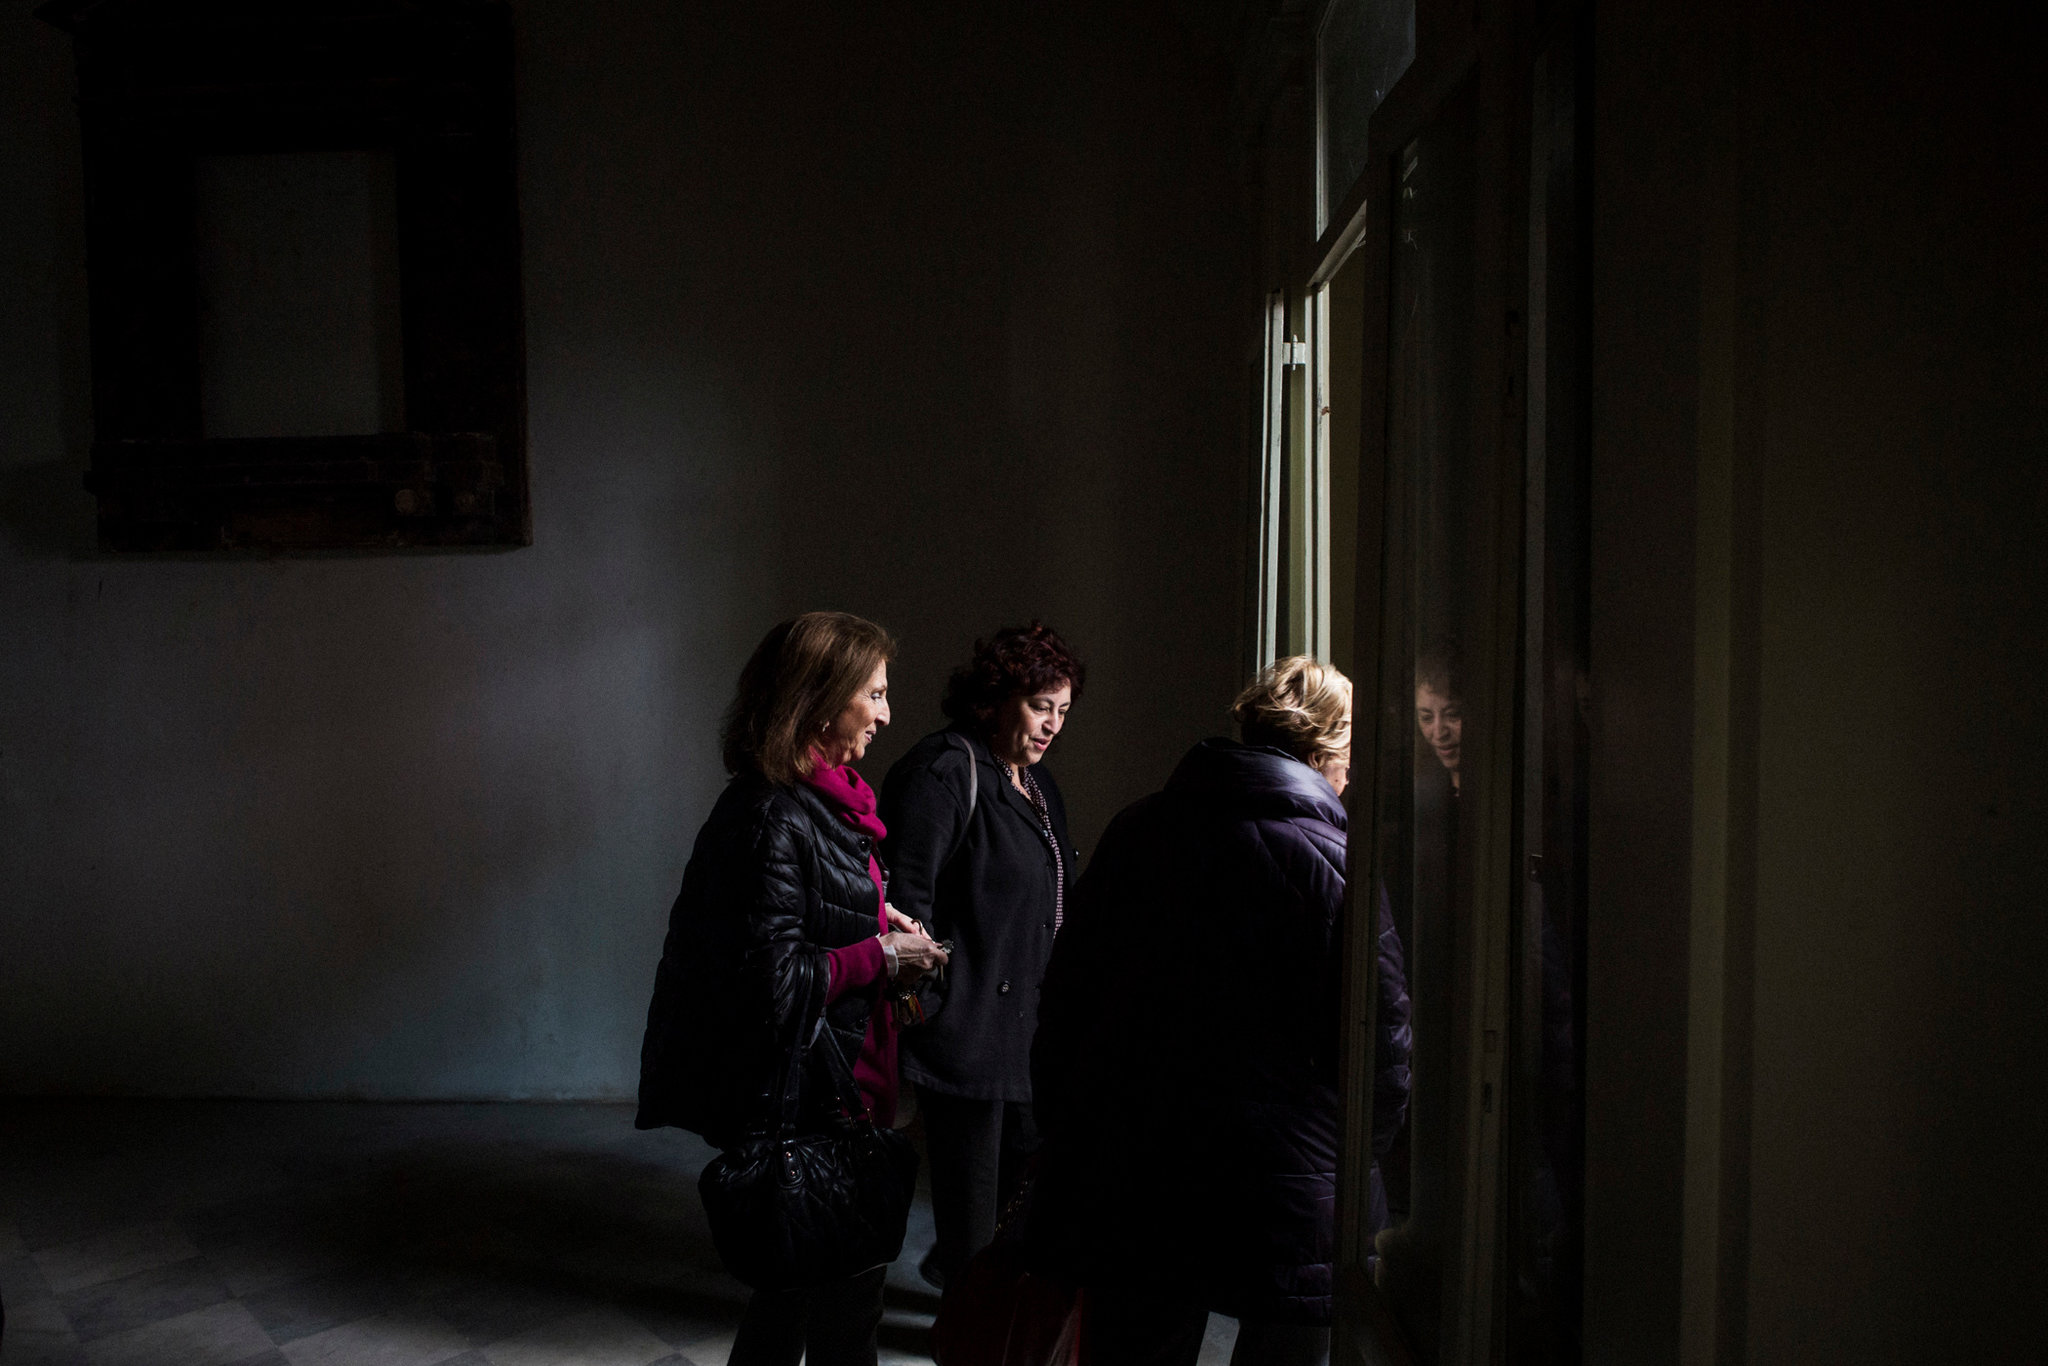 "From left, Evelyne Aouate, Luciana Pepi and Maria Antonietta Ancona — who spearheaded the efforts to get a new synagogue in Palermo — visiting the oratory. ""It's beautiful, but there is still a lot to do,"" Ms. Aouate said. Credit: Gianni Cipriano for The New York Times"